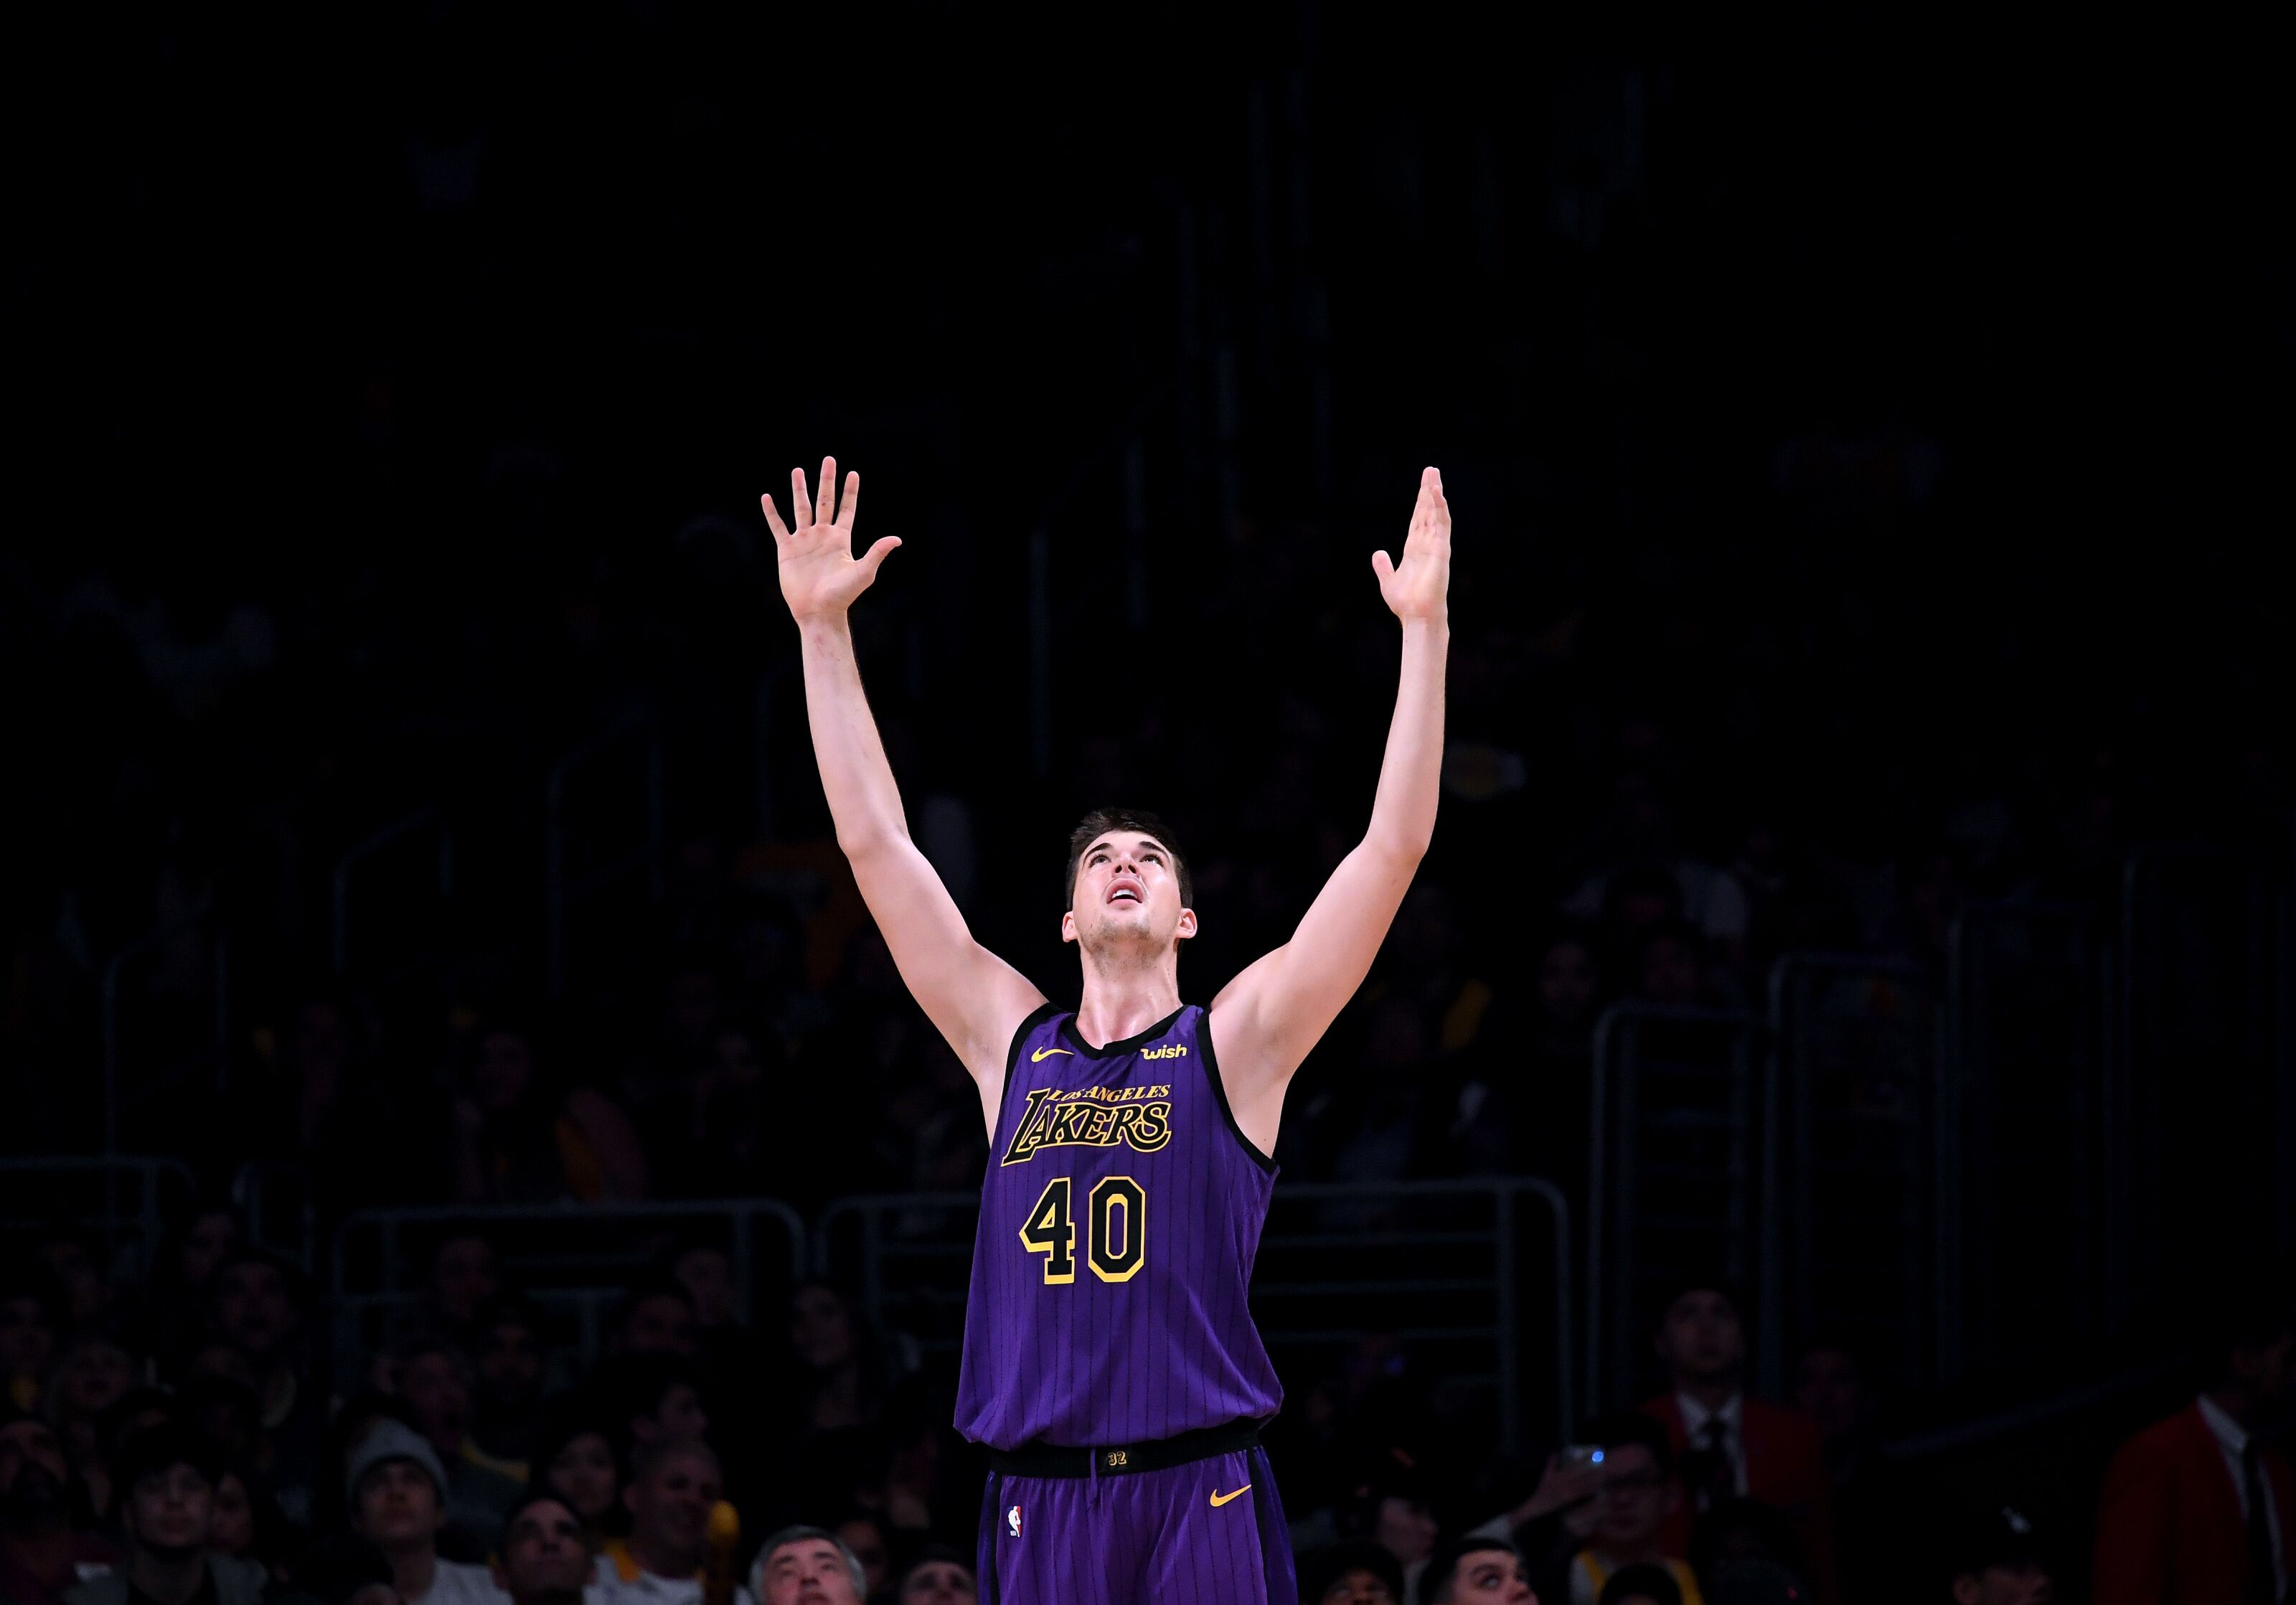 fbd7f189399 Los Angeles Lakers: Ivica Zubac's impressive night helps an Anthony Davis  trade